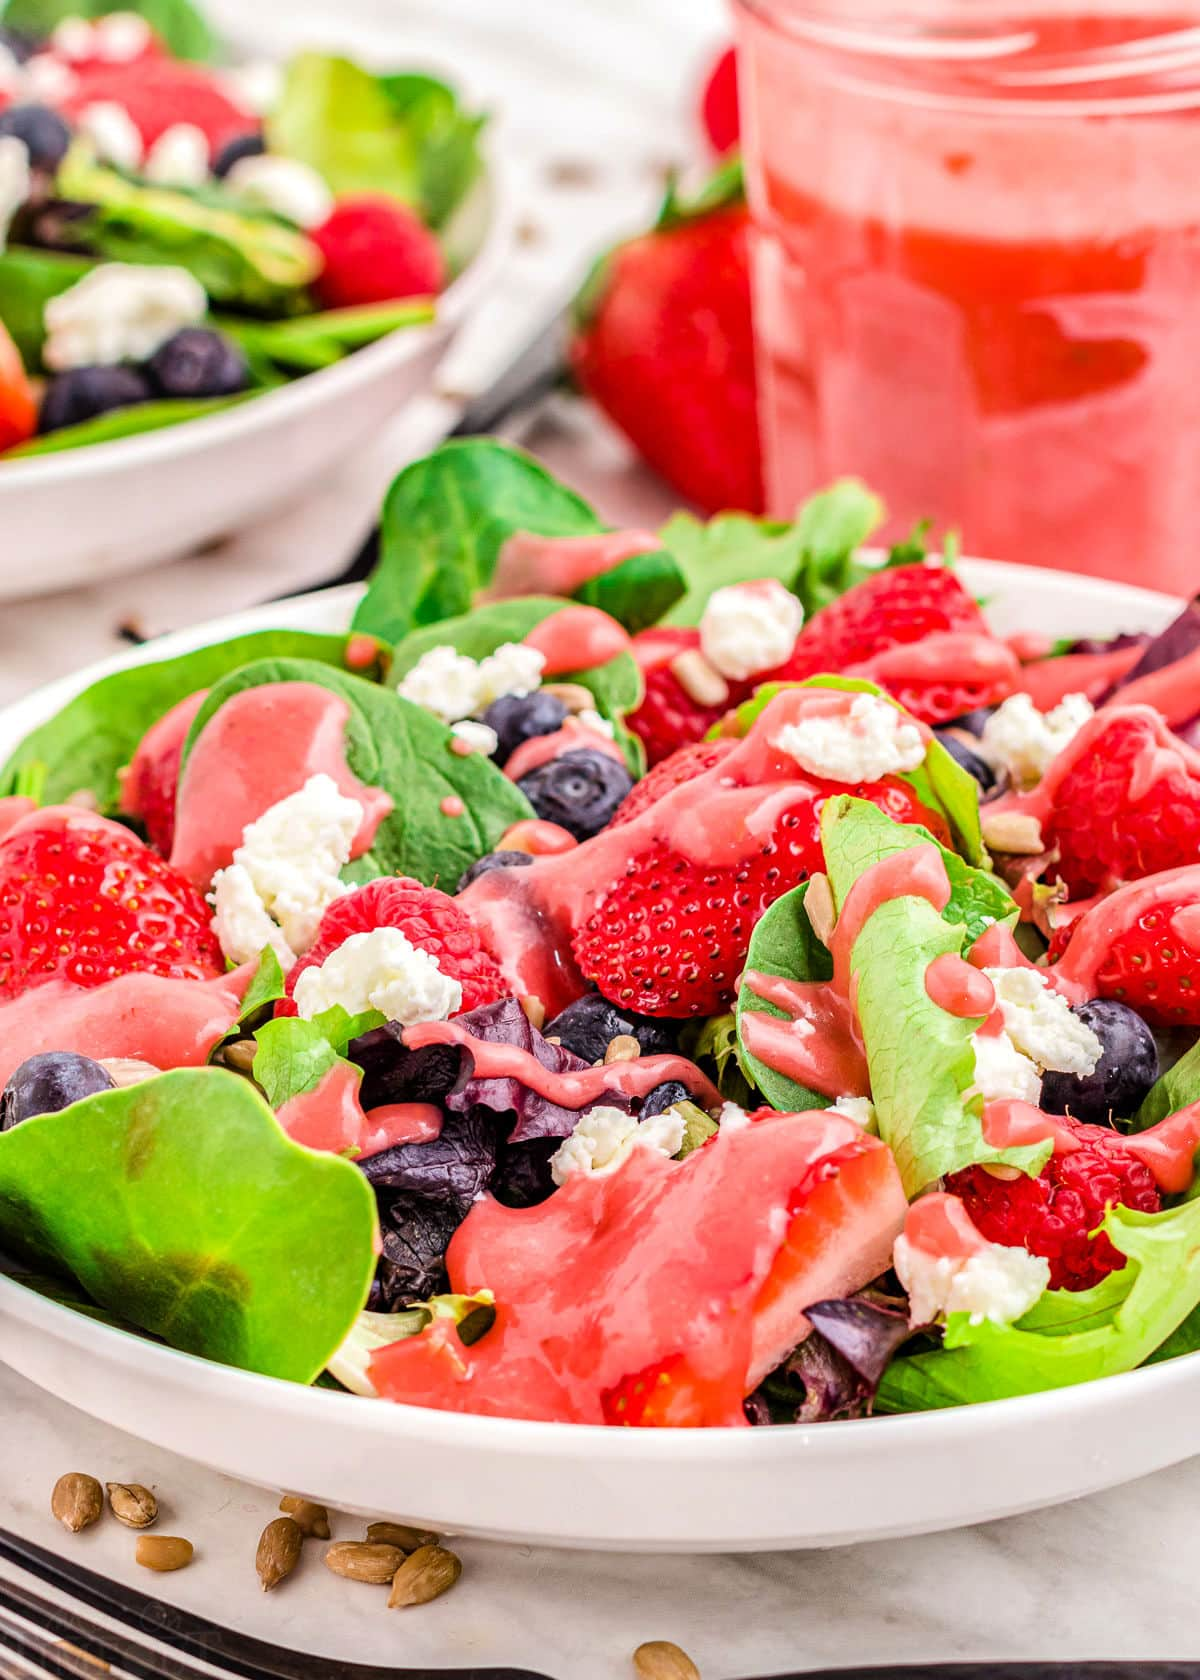 ready to enjoy summer berry salad with raspberry vinaigrette in jar in background.